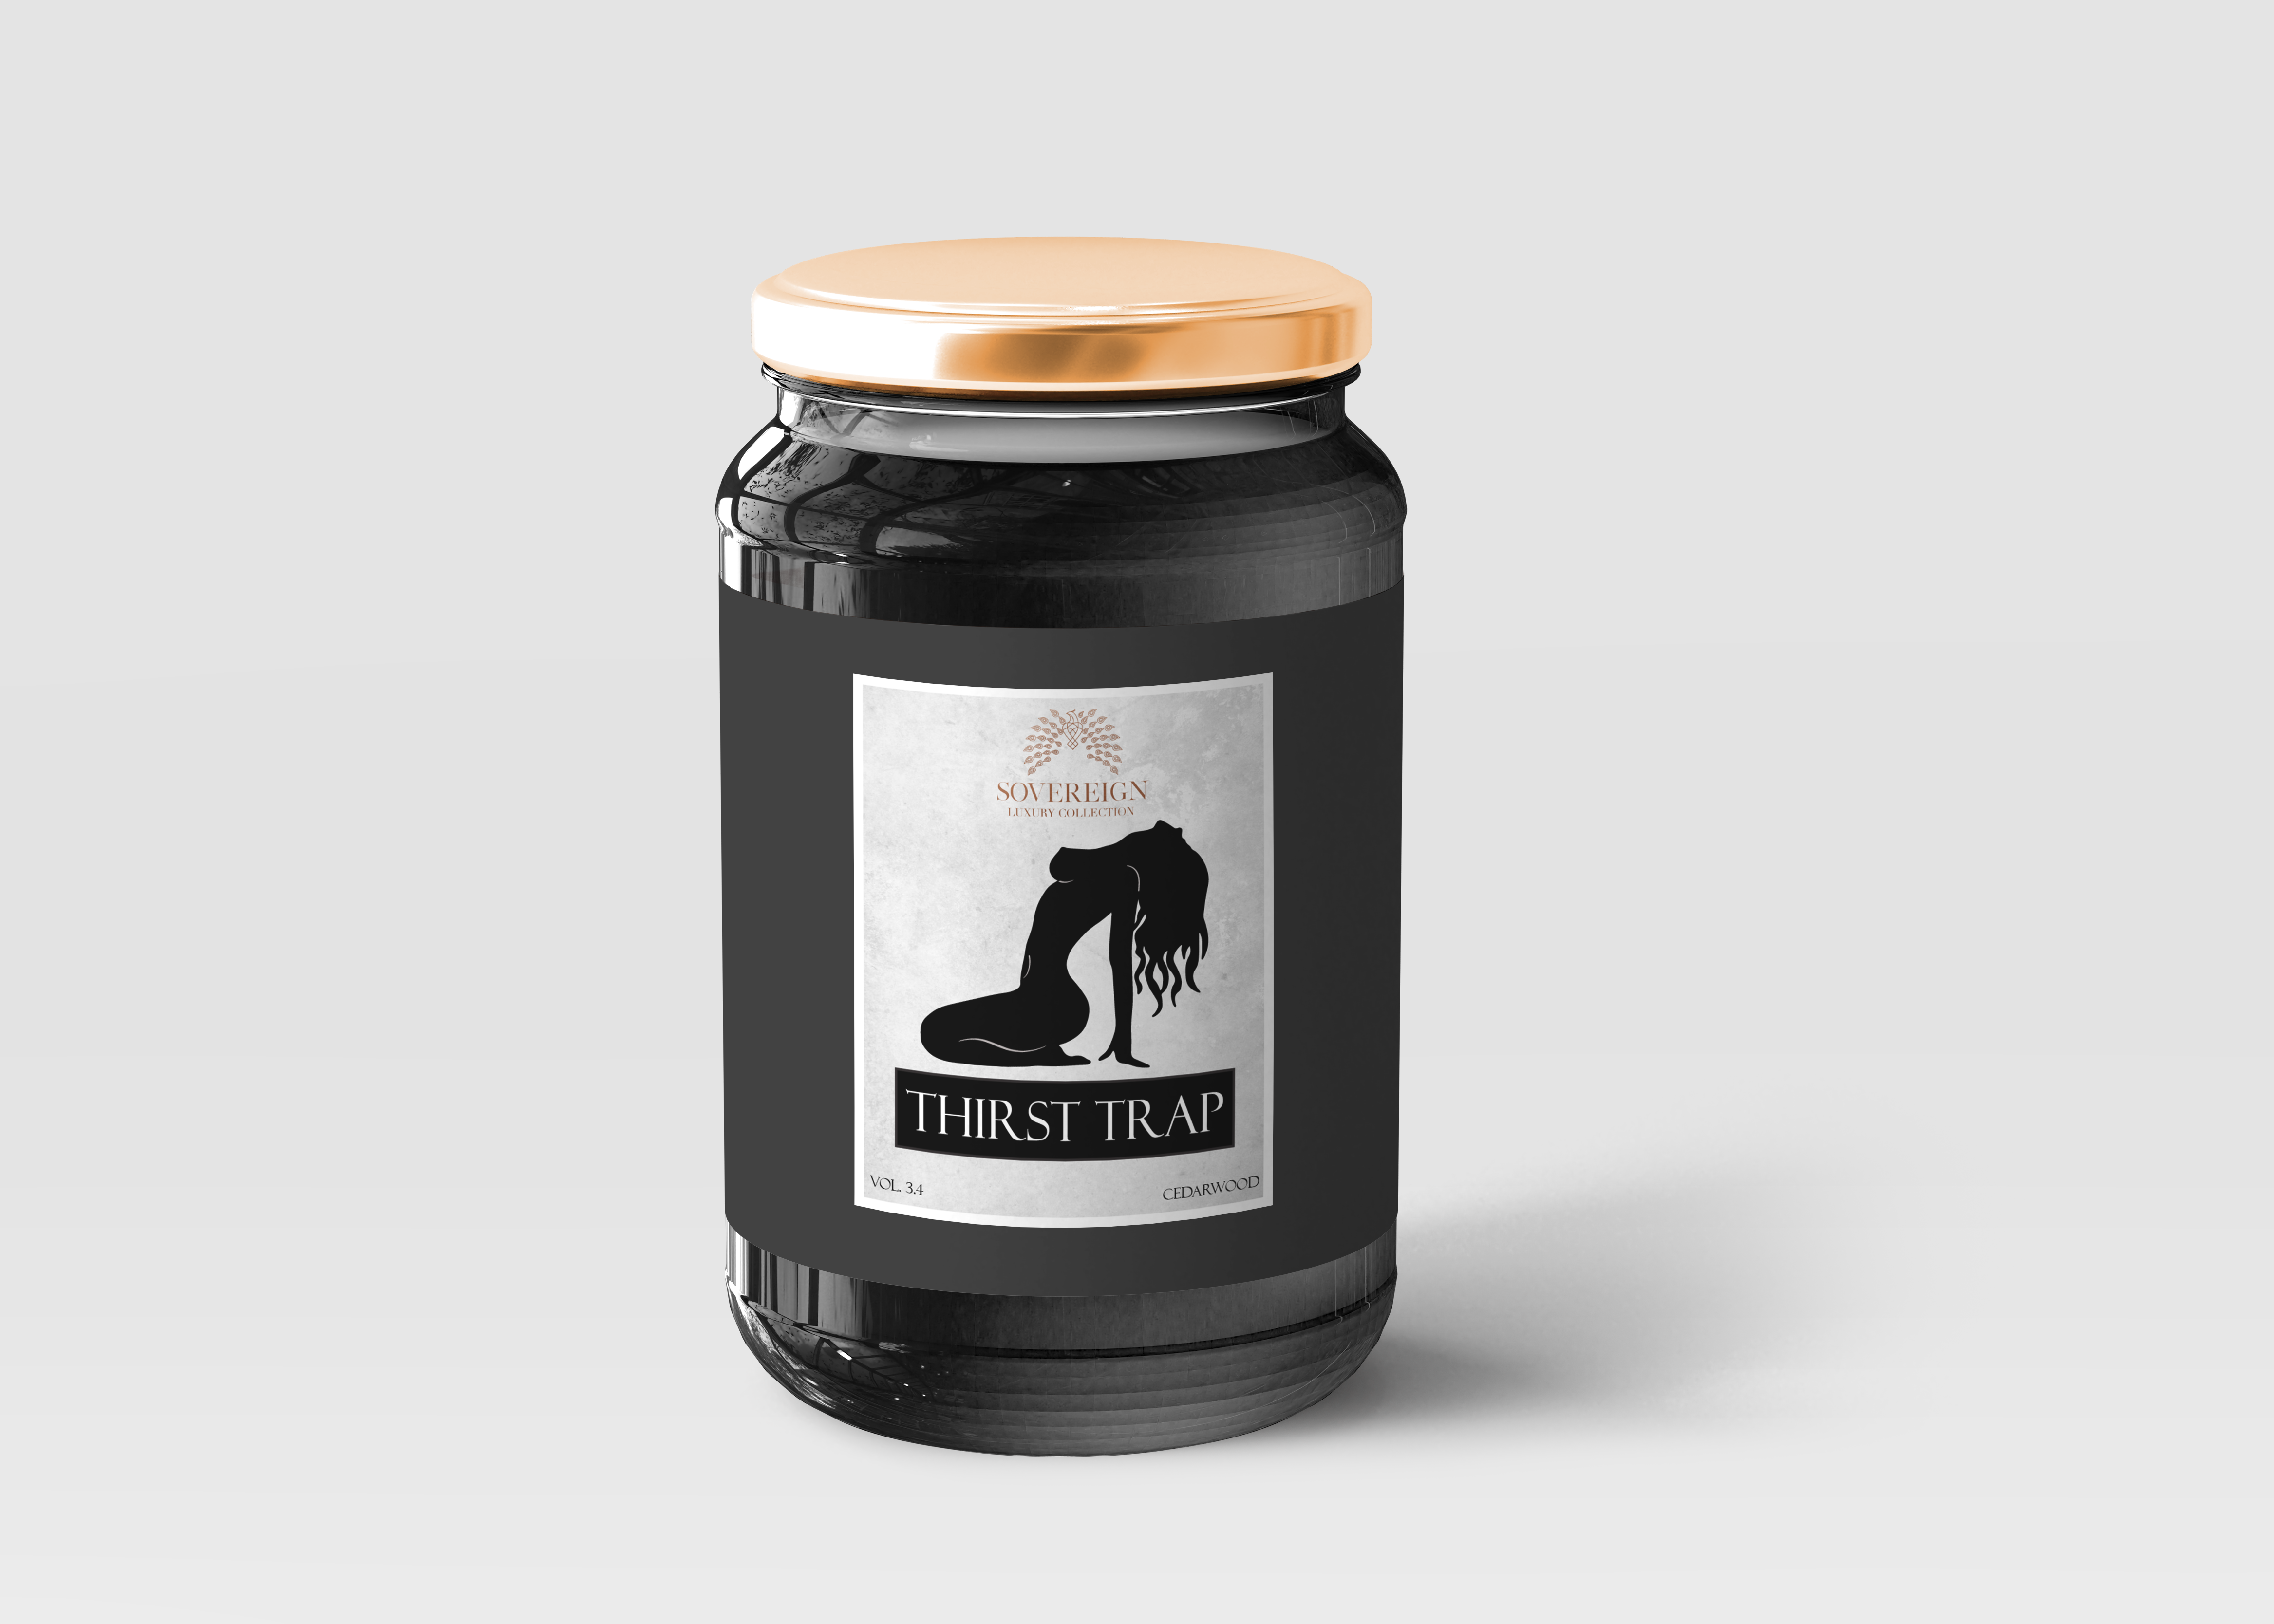 I will design label and packaging for your product